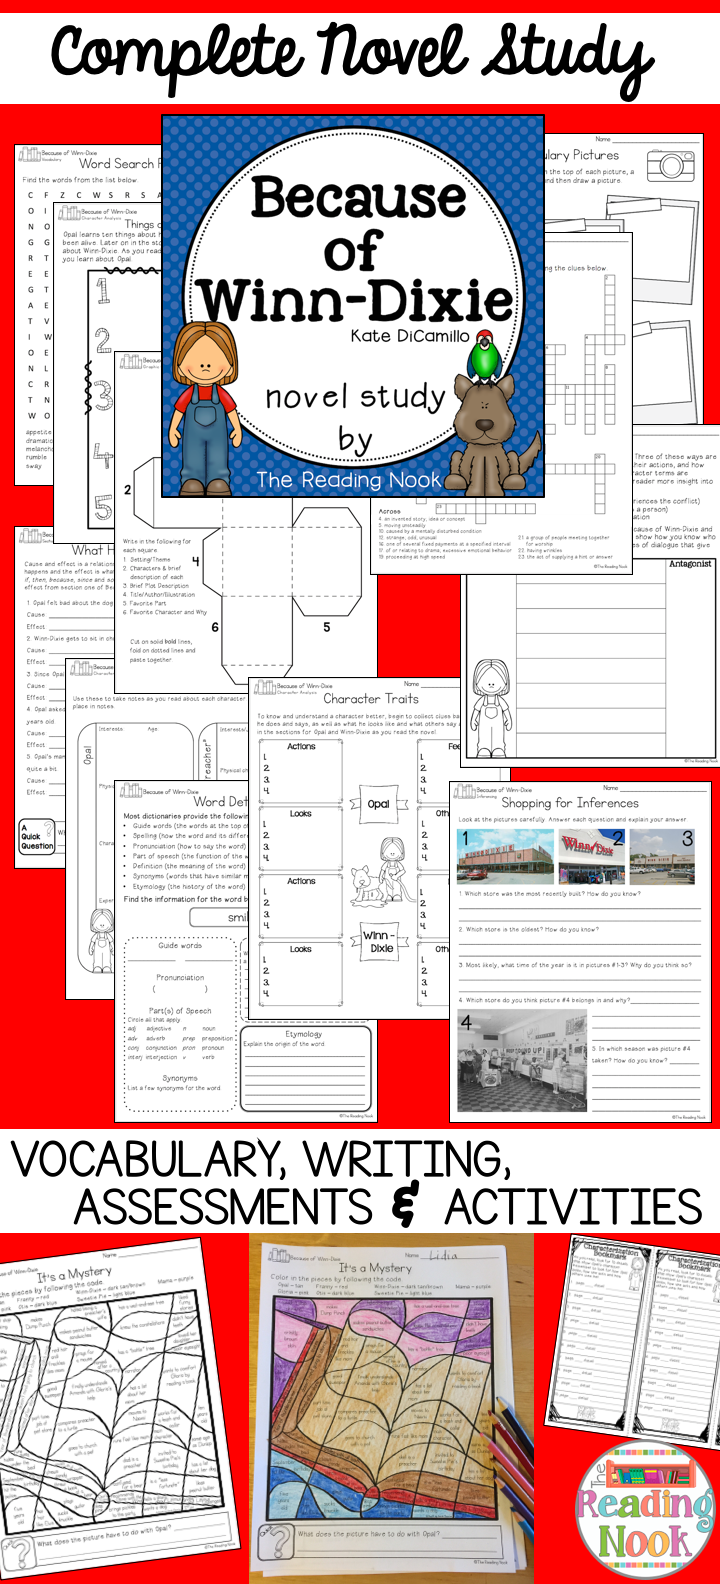 worksheet Because Of Winn Dixie Worksheets because of winn dixie novel study writing assessment novels and complete vocabulary assessments many